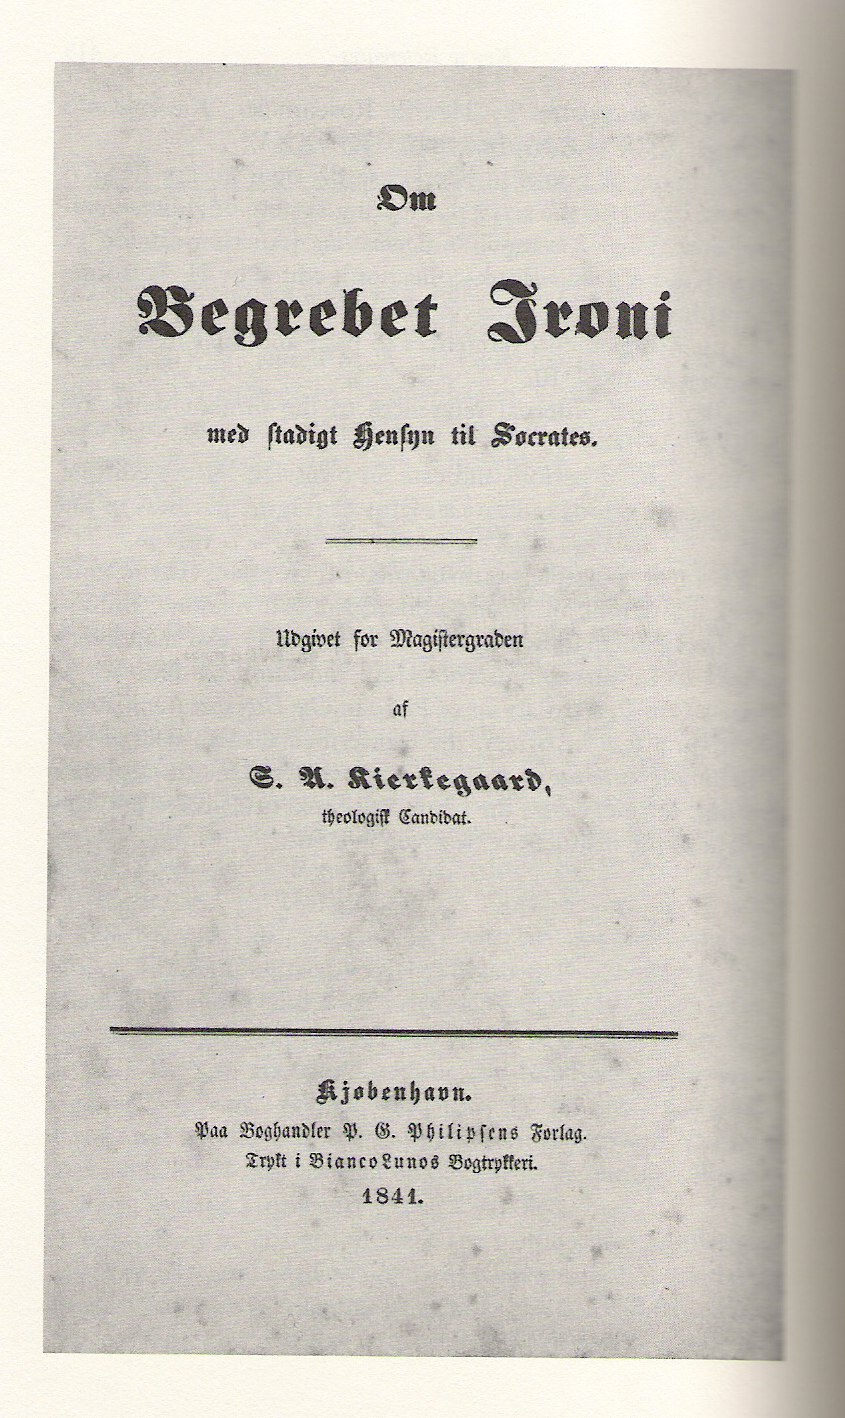 thesis cover page to søren kierkegaard s university thesis 1841